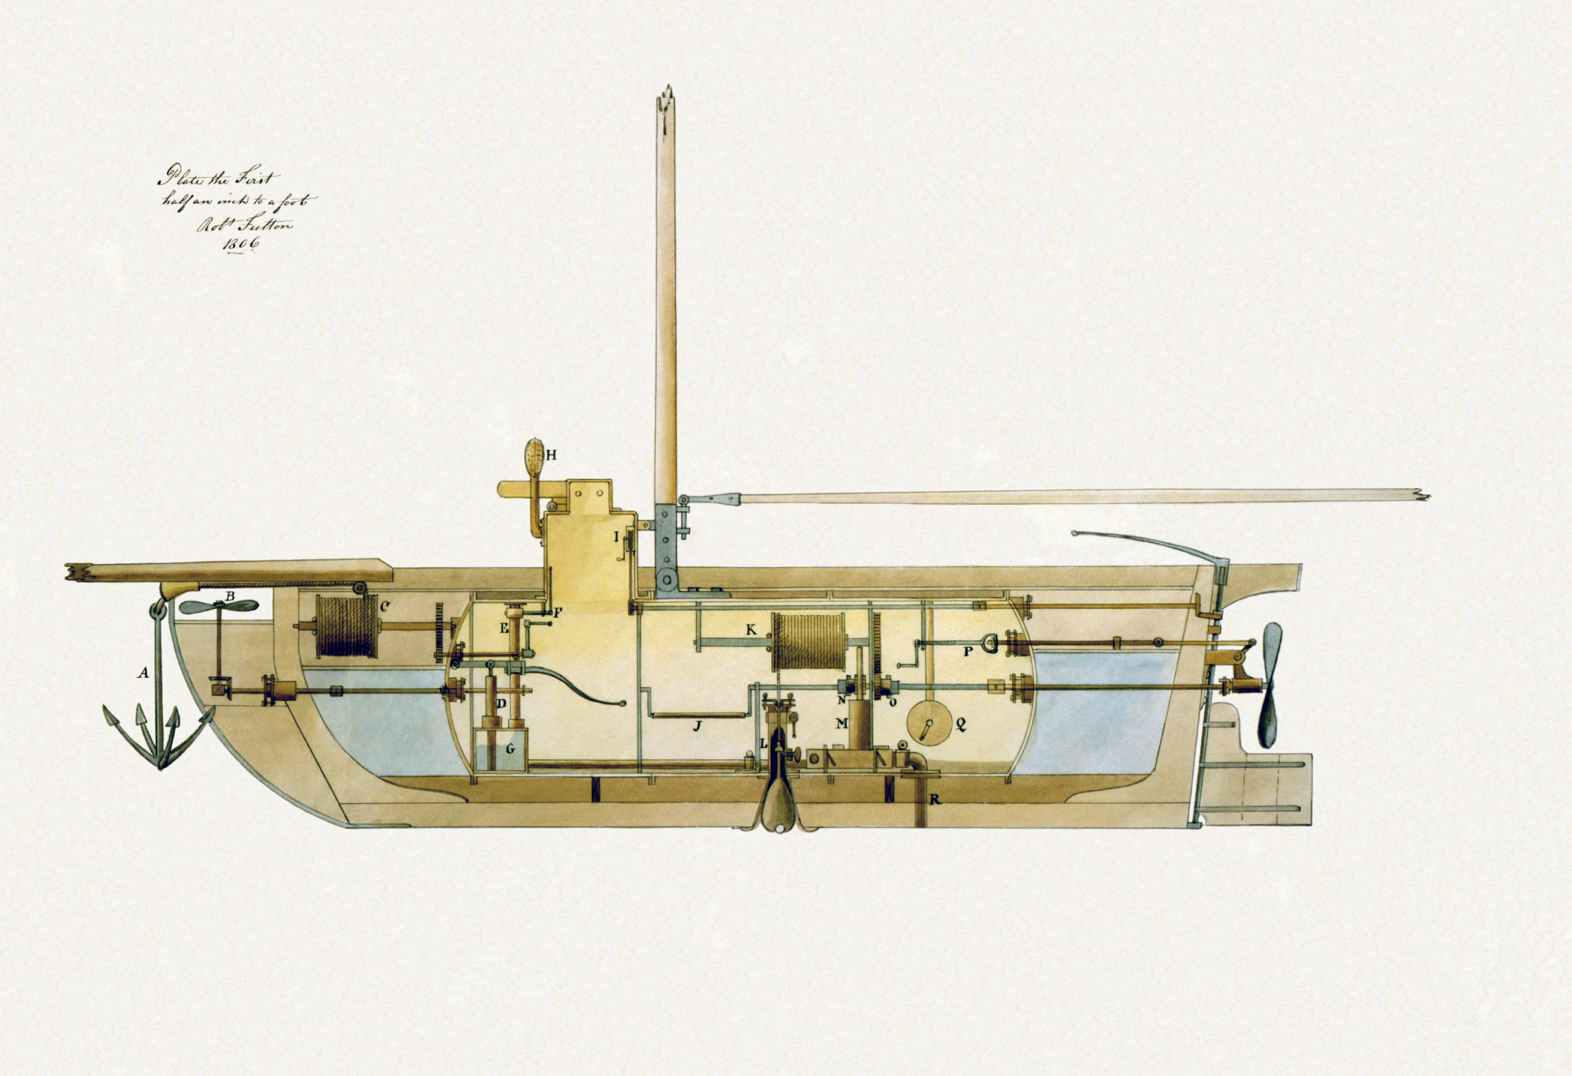 The secret plot to rescue napoleon by submarine history robert fultons submarine of 1806 was developed from plans paid for by the british and was probably the inspiration for johnsons designs pooptronica